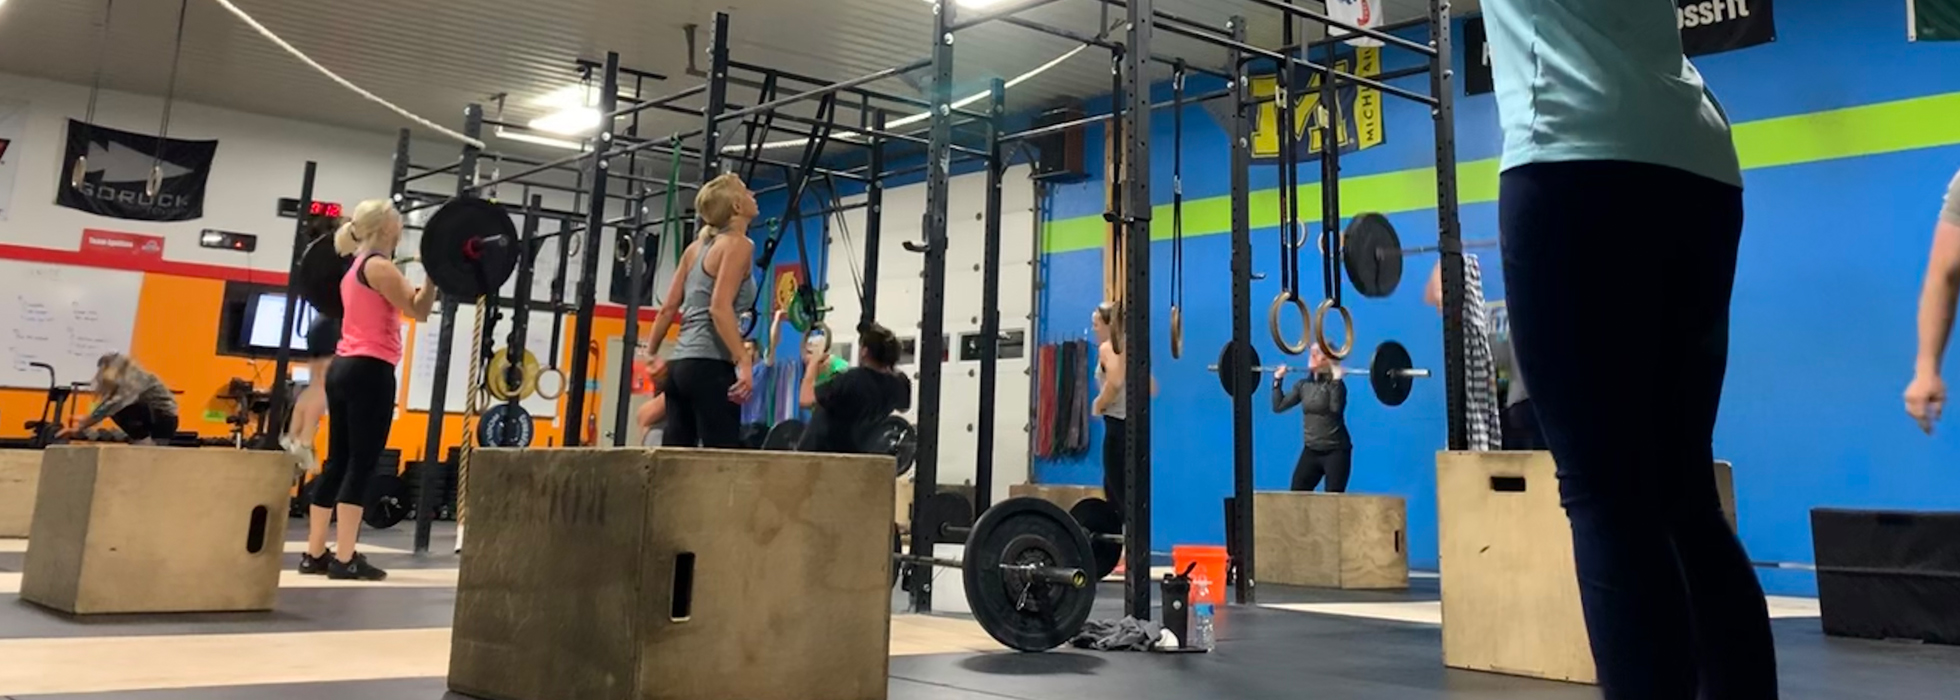 CrossFit Classes near Flushing MI, CrossFit Classes near Flint MI